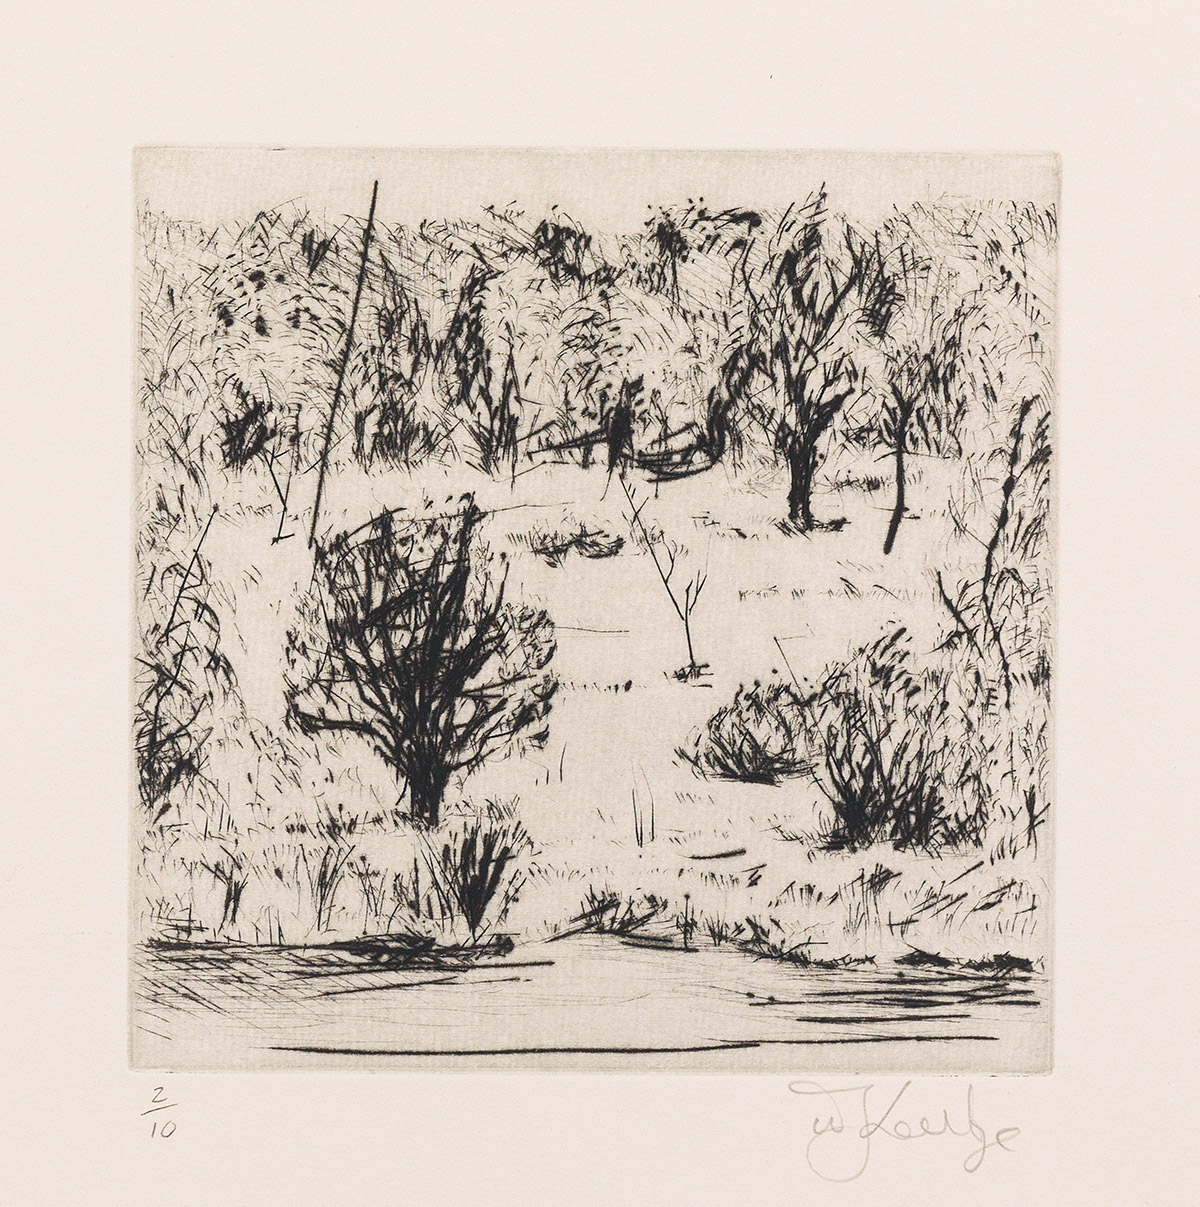 WILLIAM-KENTRIDGE-Landscape